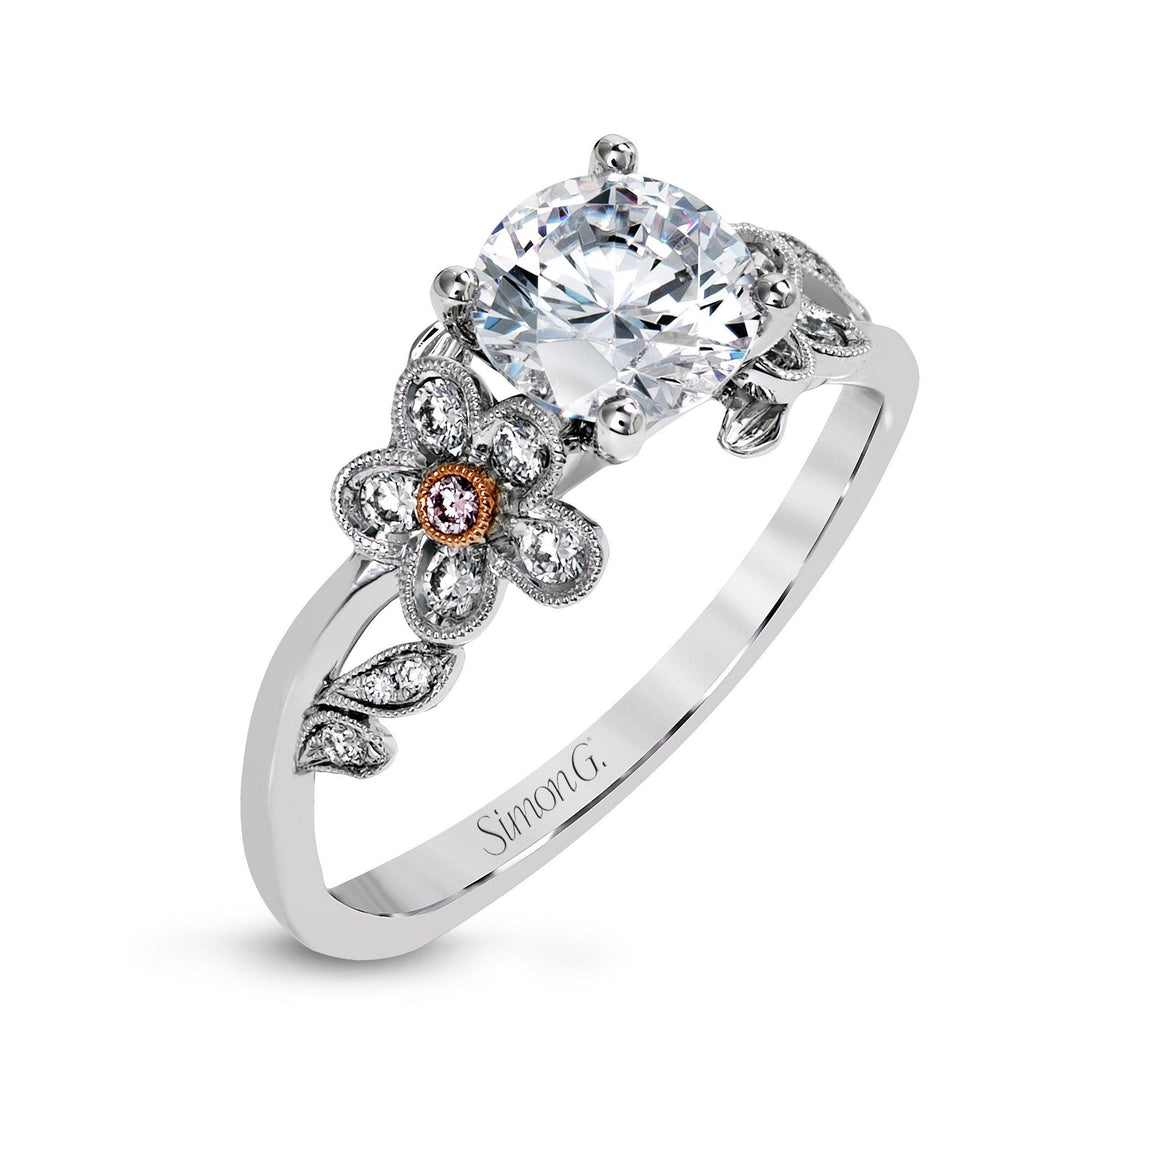 Simon G - MR2615, Engagement Ring, Simon G - Birmingham Jewelry